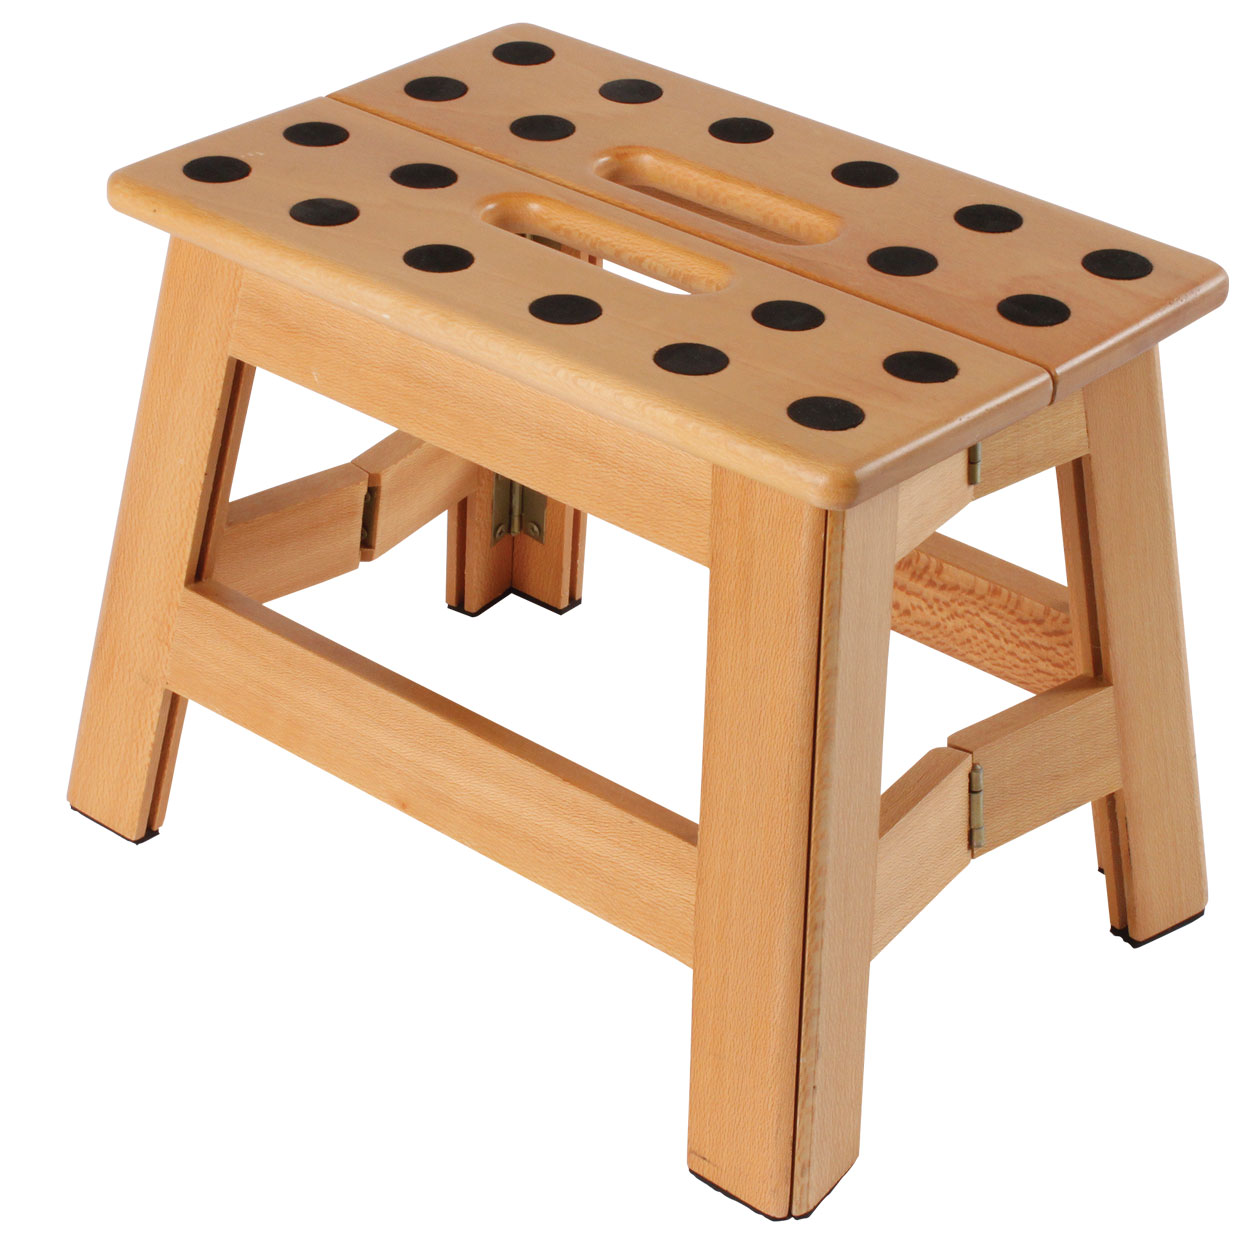 WOODEN STEP STOOL 22CM  sc 1 st  Coopers of Stortford & Just One Small Step | Housewares | Coopers Of Stortford islam-shia.org